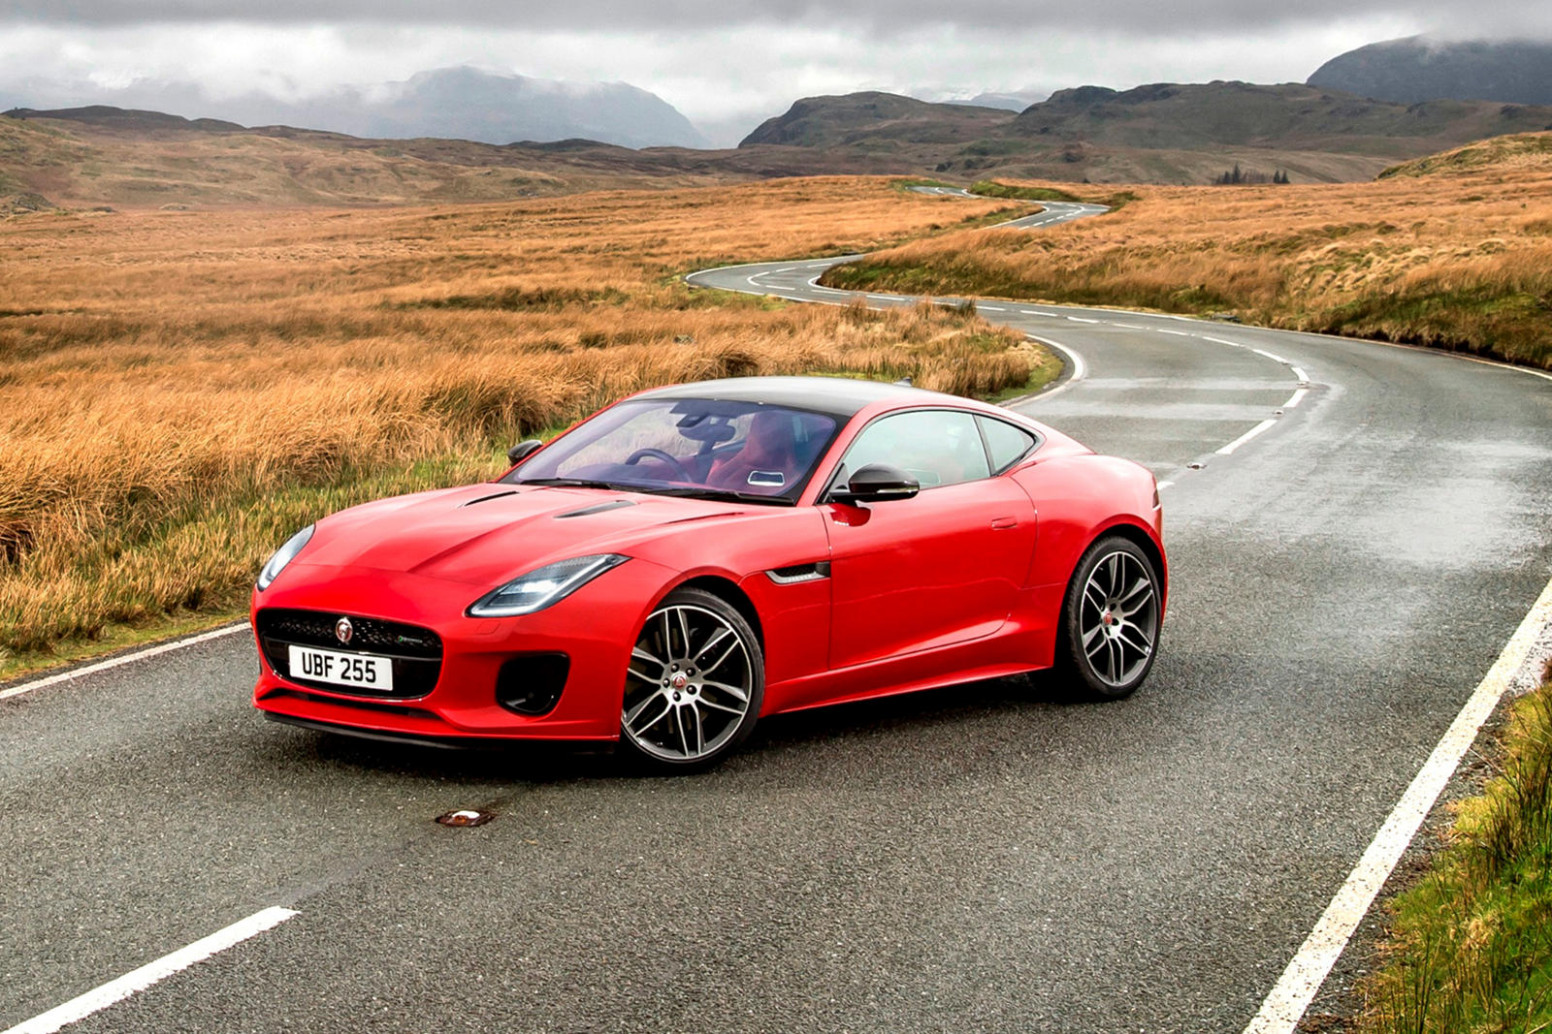 6 Jaguar F-TYPE R-Dynamic Coupe Review, Ratings, MPG and Prices ..